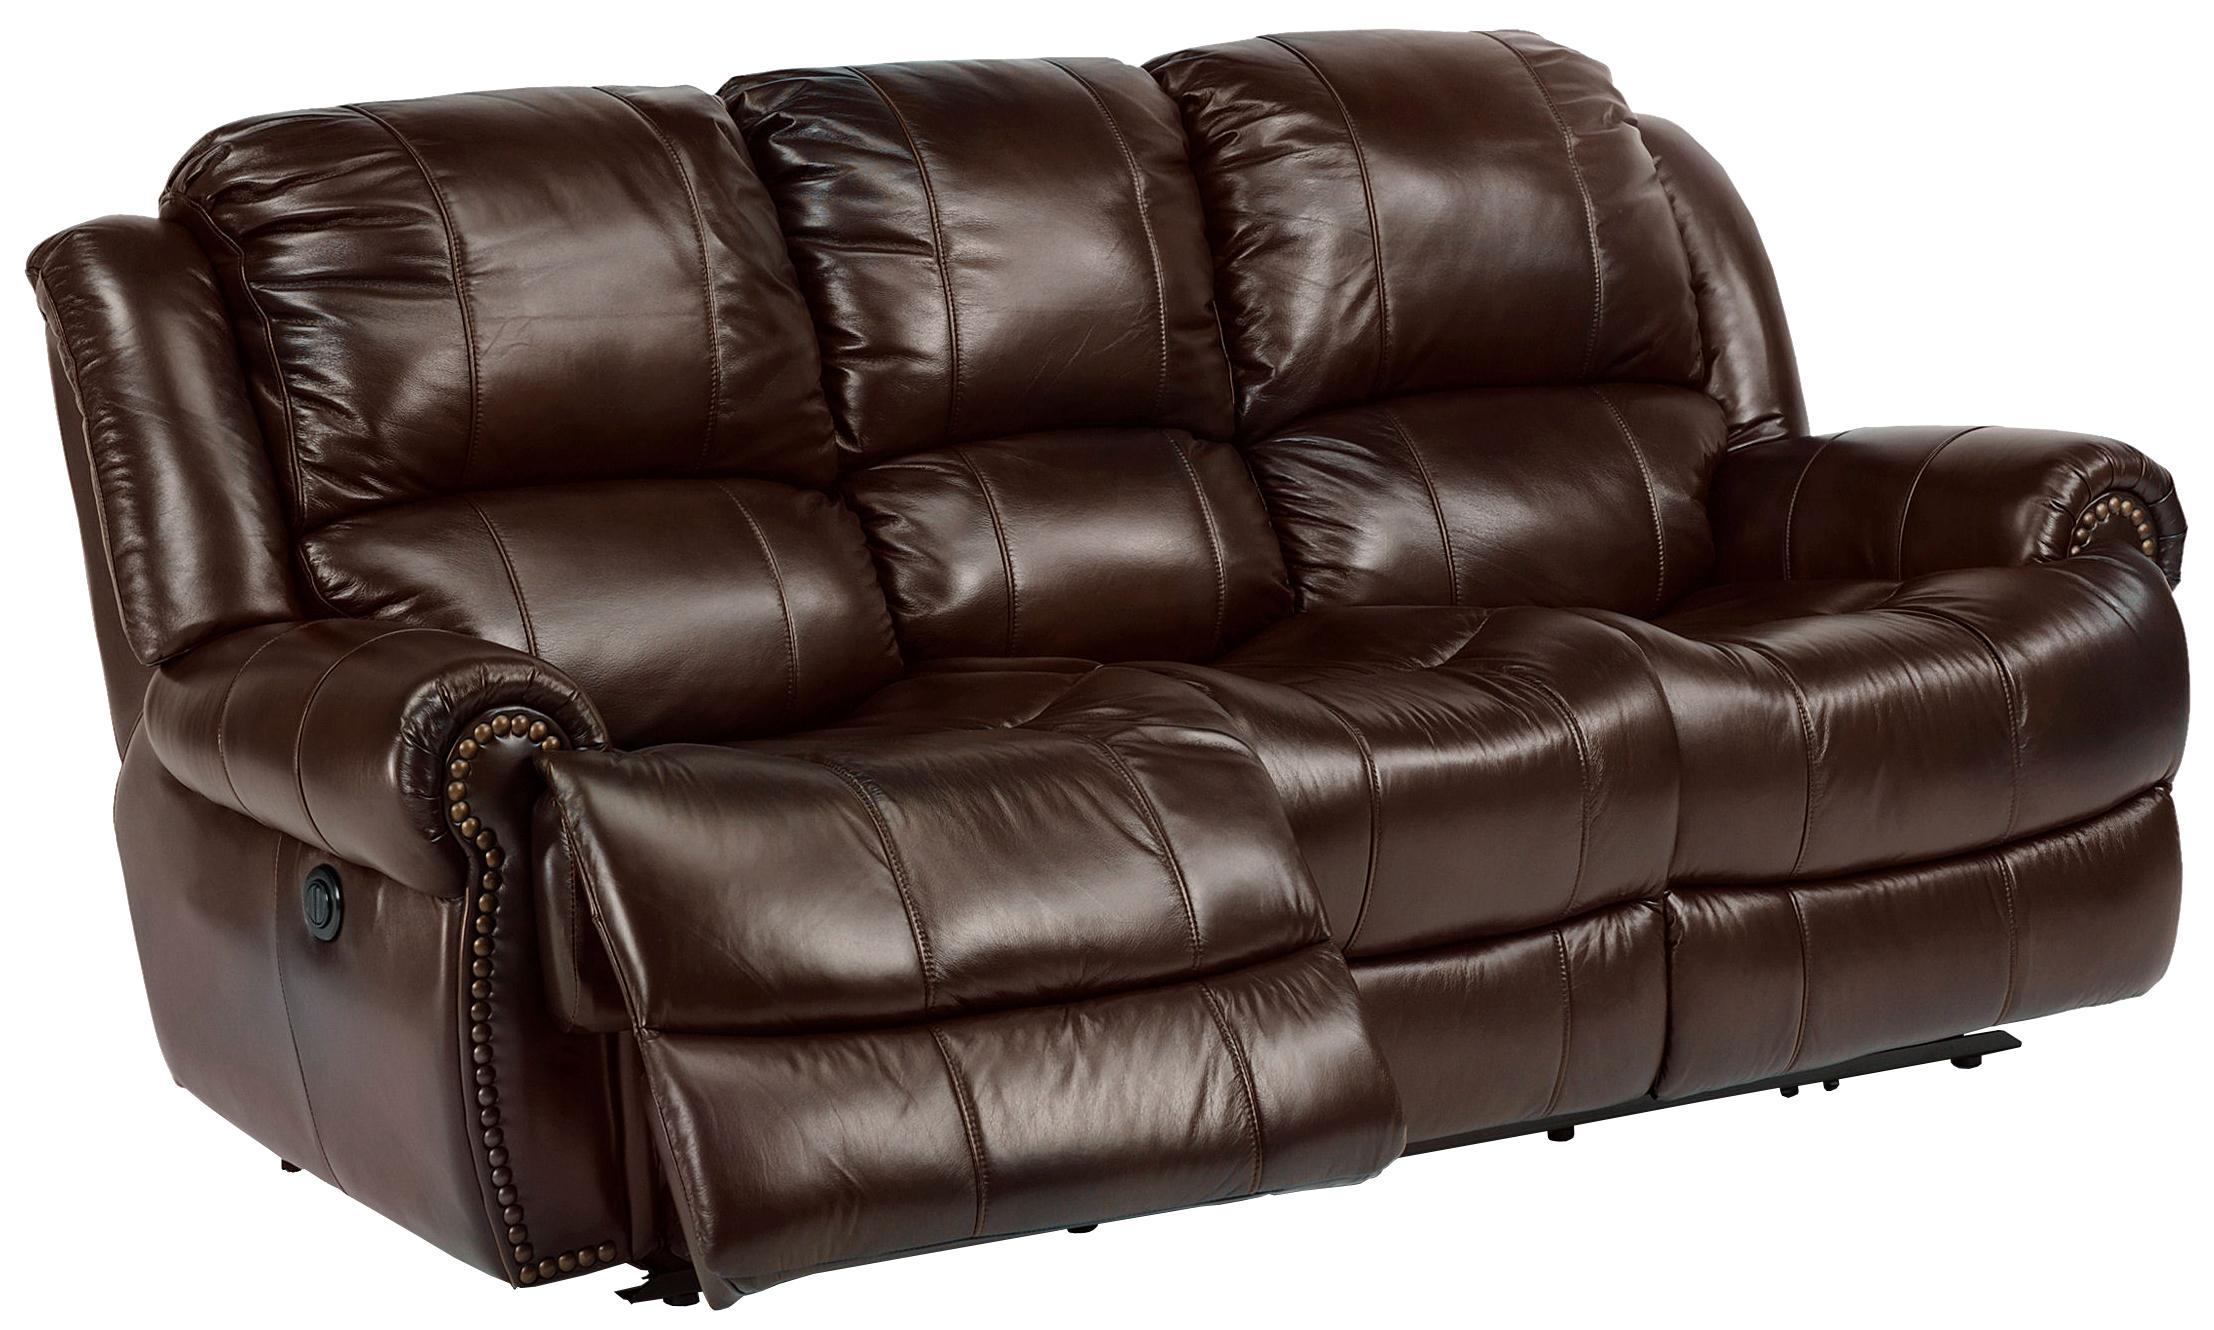 Flexsteel Latitudes Capitol 1311 62p Power Reclining